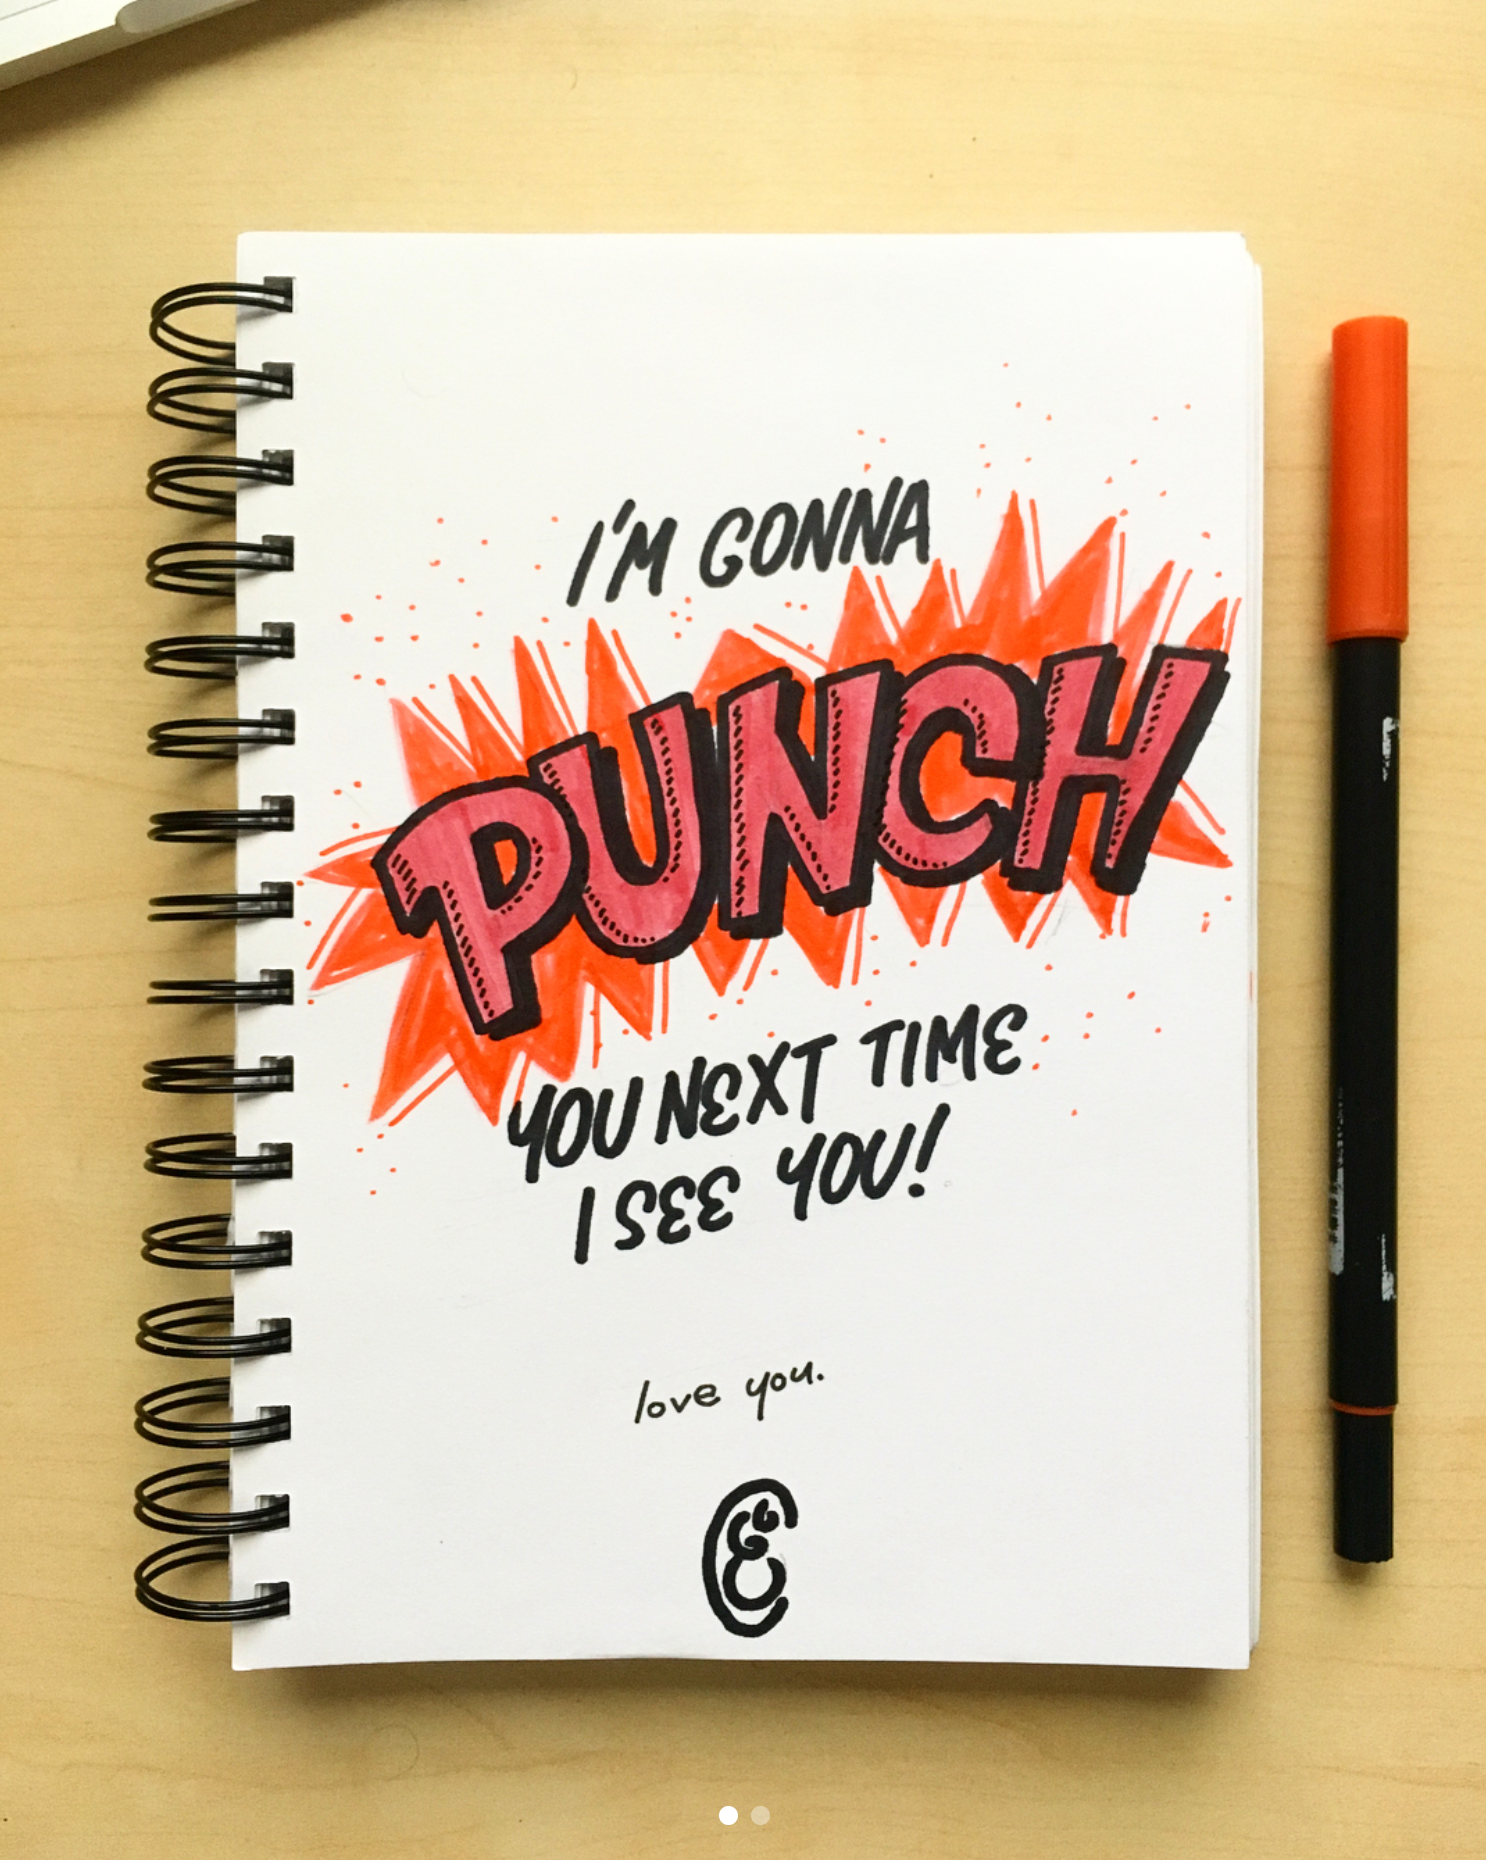 comic book lettering, starburst, punch, action, sketchbook, fun type